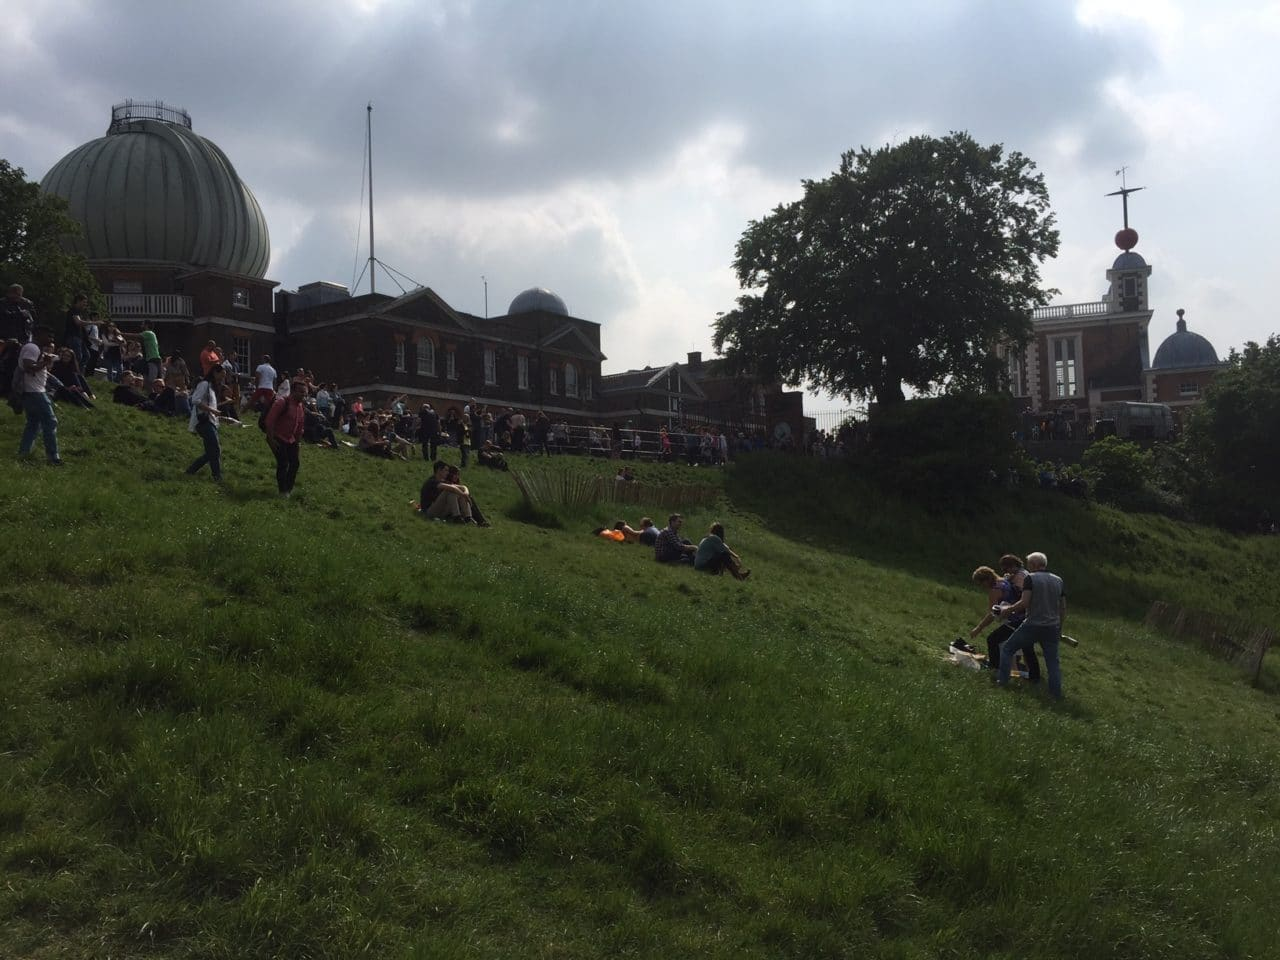 Visiting the Greenwich Observatory: Time to Learn About Time